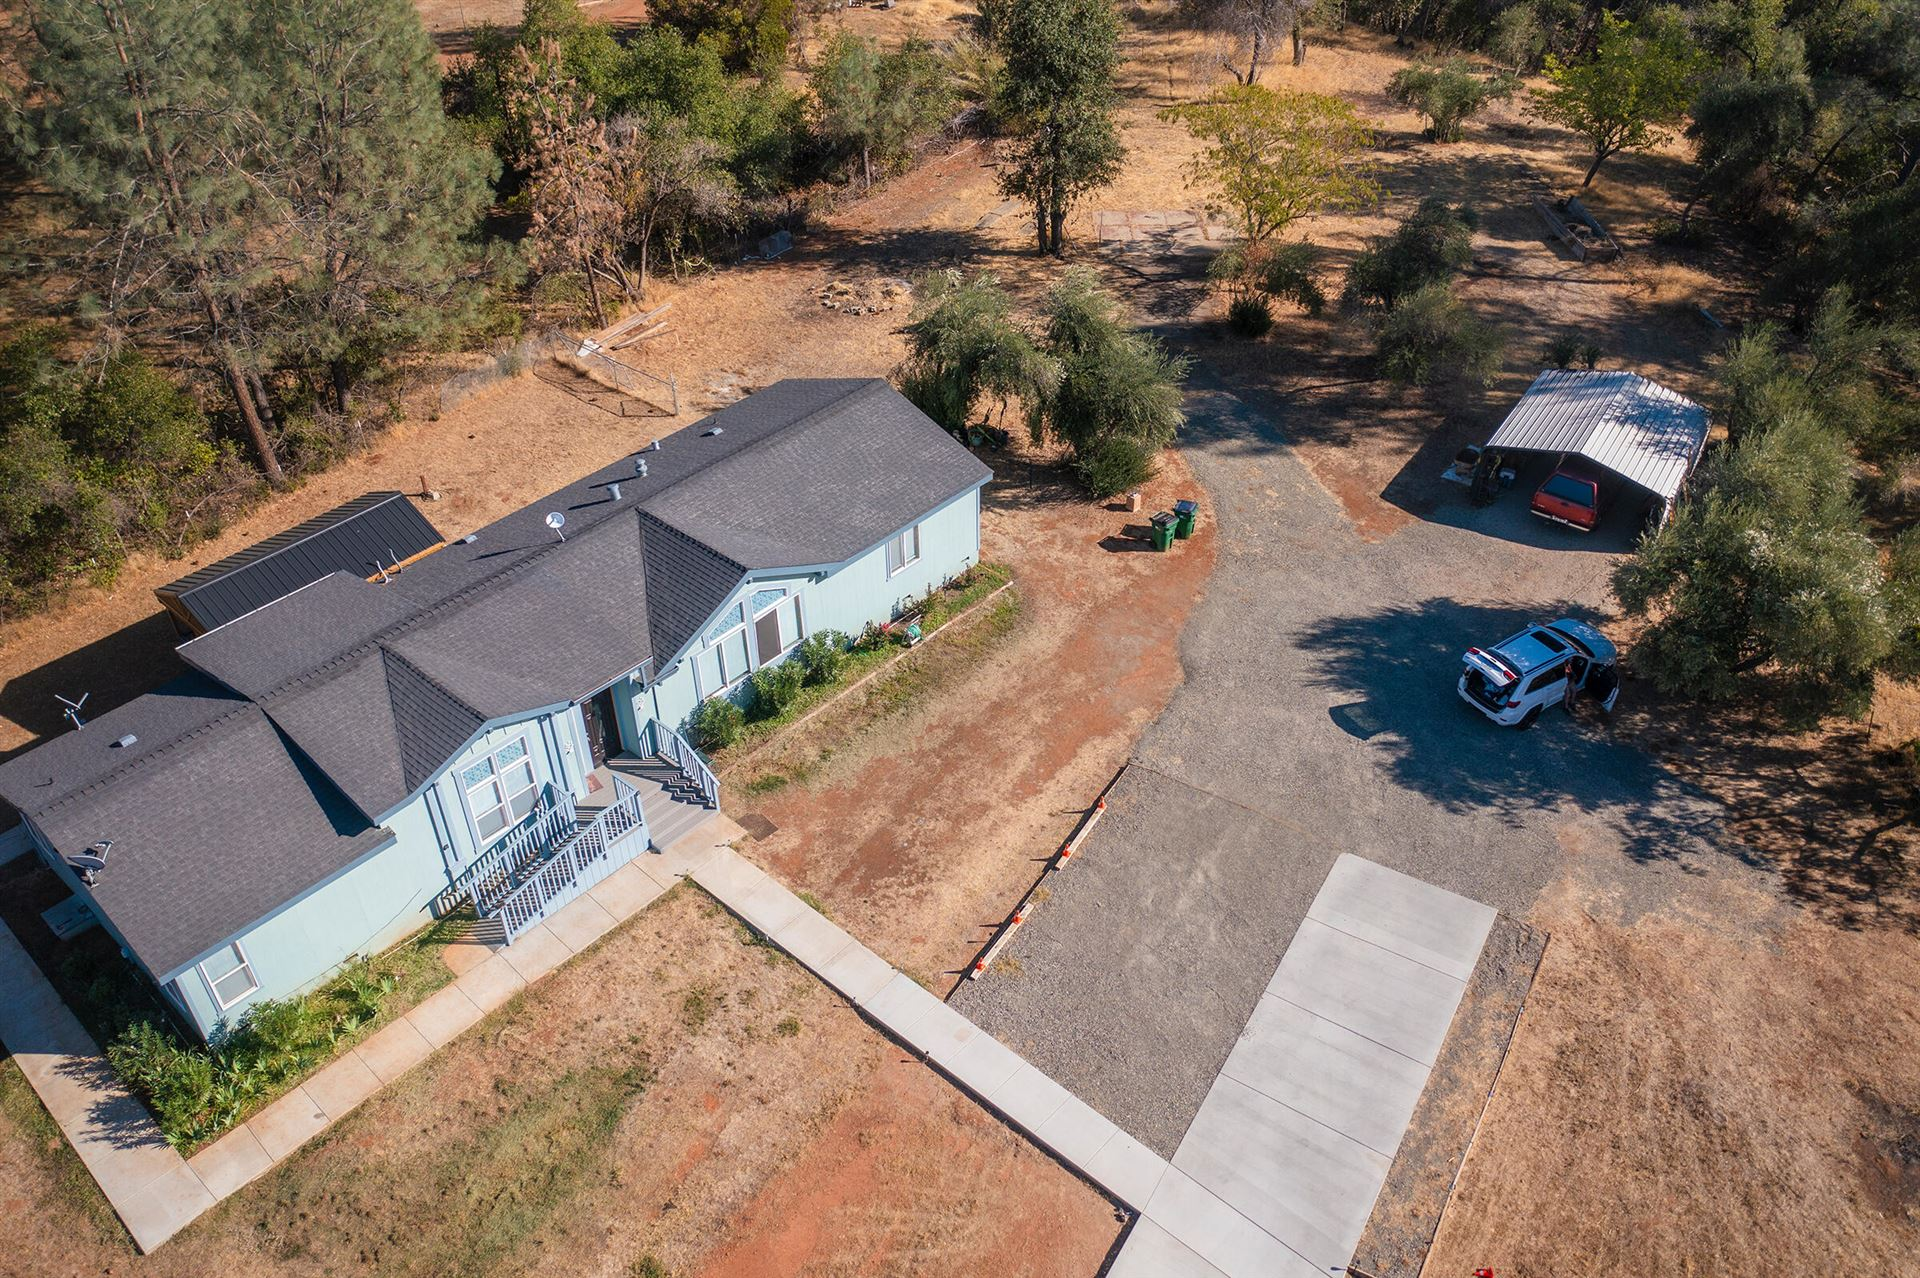 Photo of 17477 Hawthorne Ave, Anderson, CA 96007 (MLS # 21-4563)